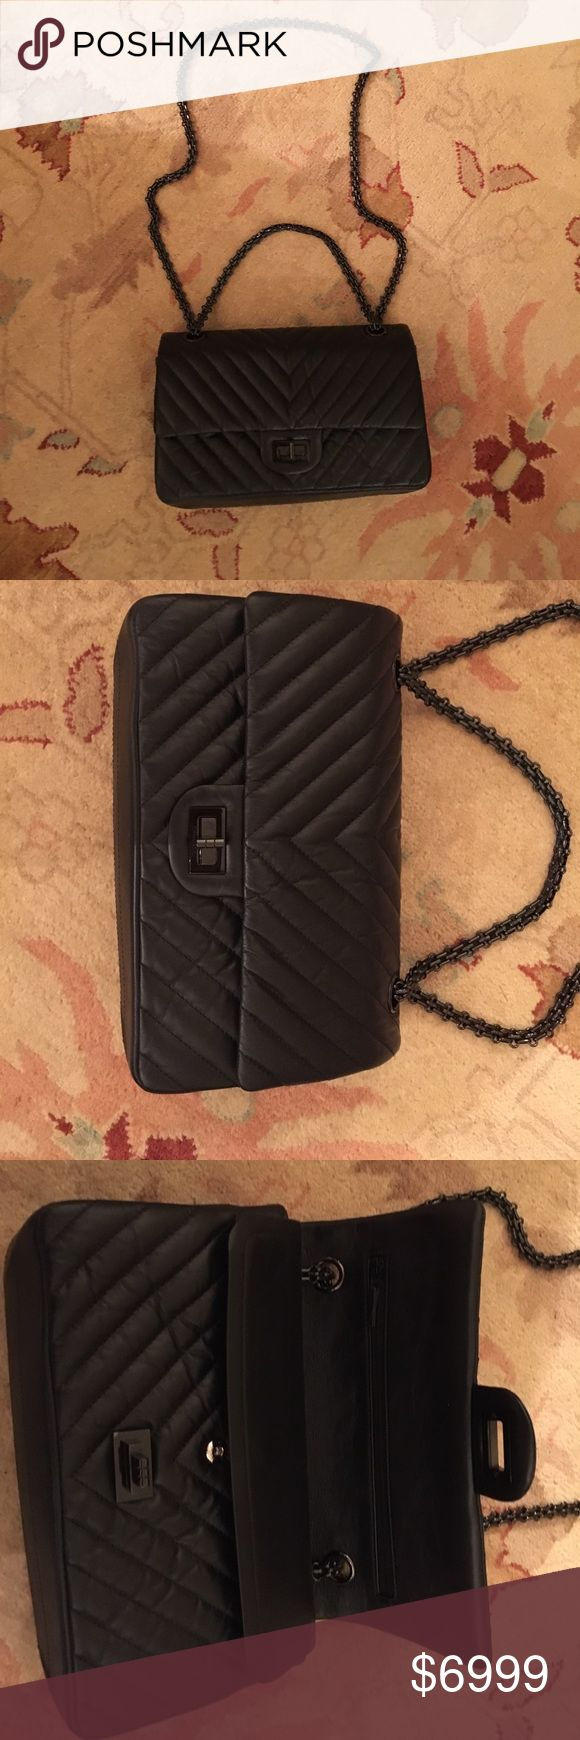 Chanel So Black Chevron reissue 2.55 Flap bag NWT Very Rare New with tags Chanel Authentic So Black 225 Flap bag purchased from Chanel boutique in Saks CHANEL Bags Crossbody Bags